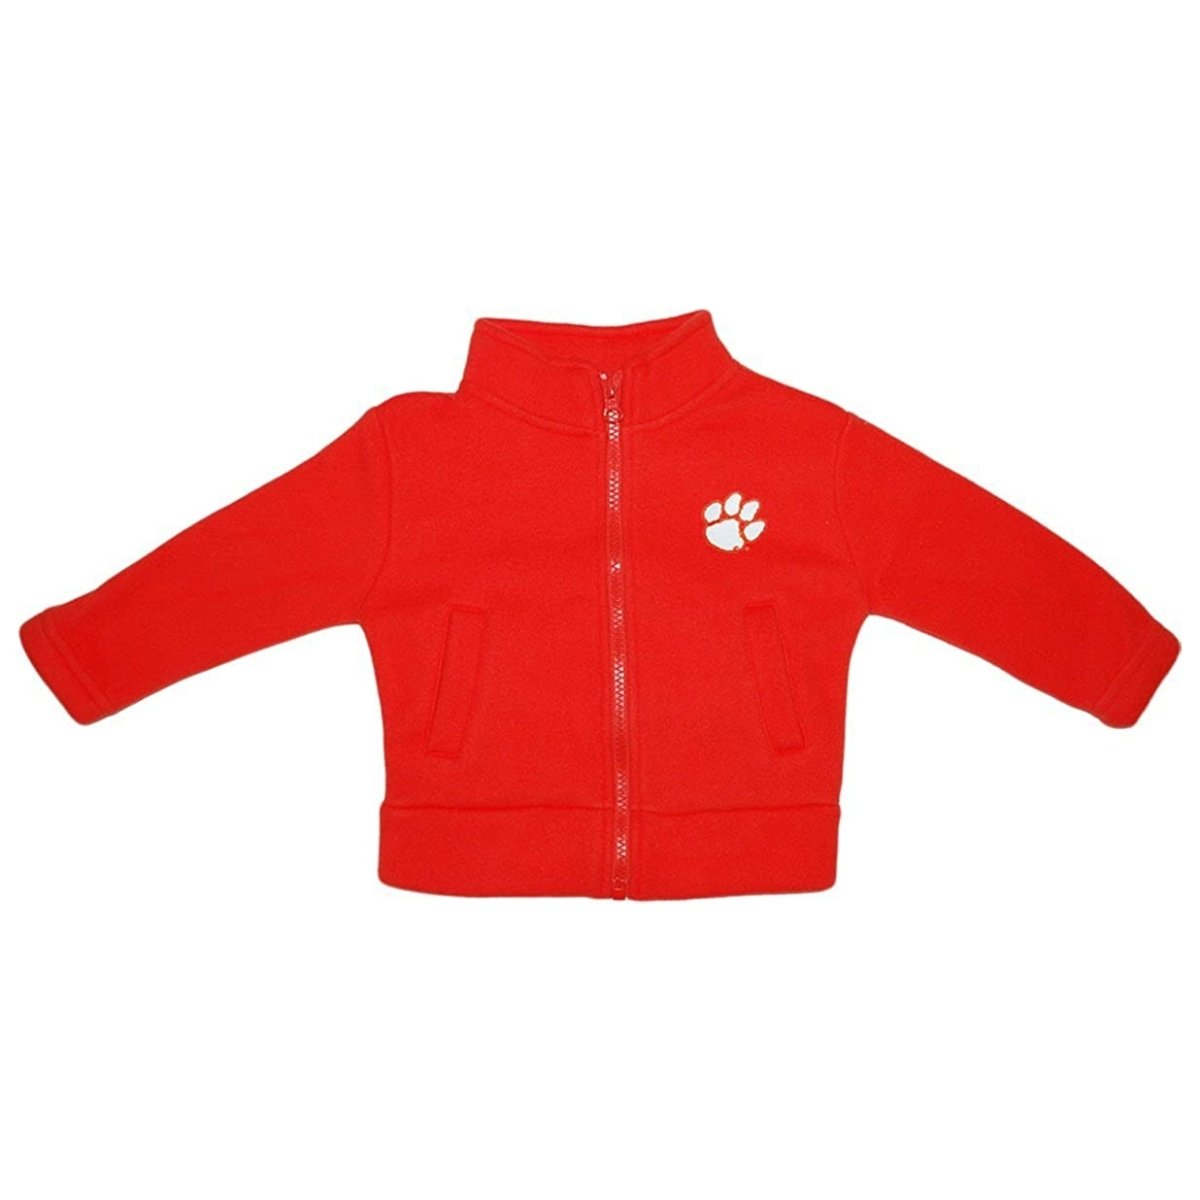 Toddler Polar Fleece Jacket - Mr. Knickerbocker